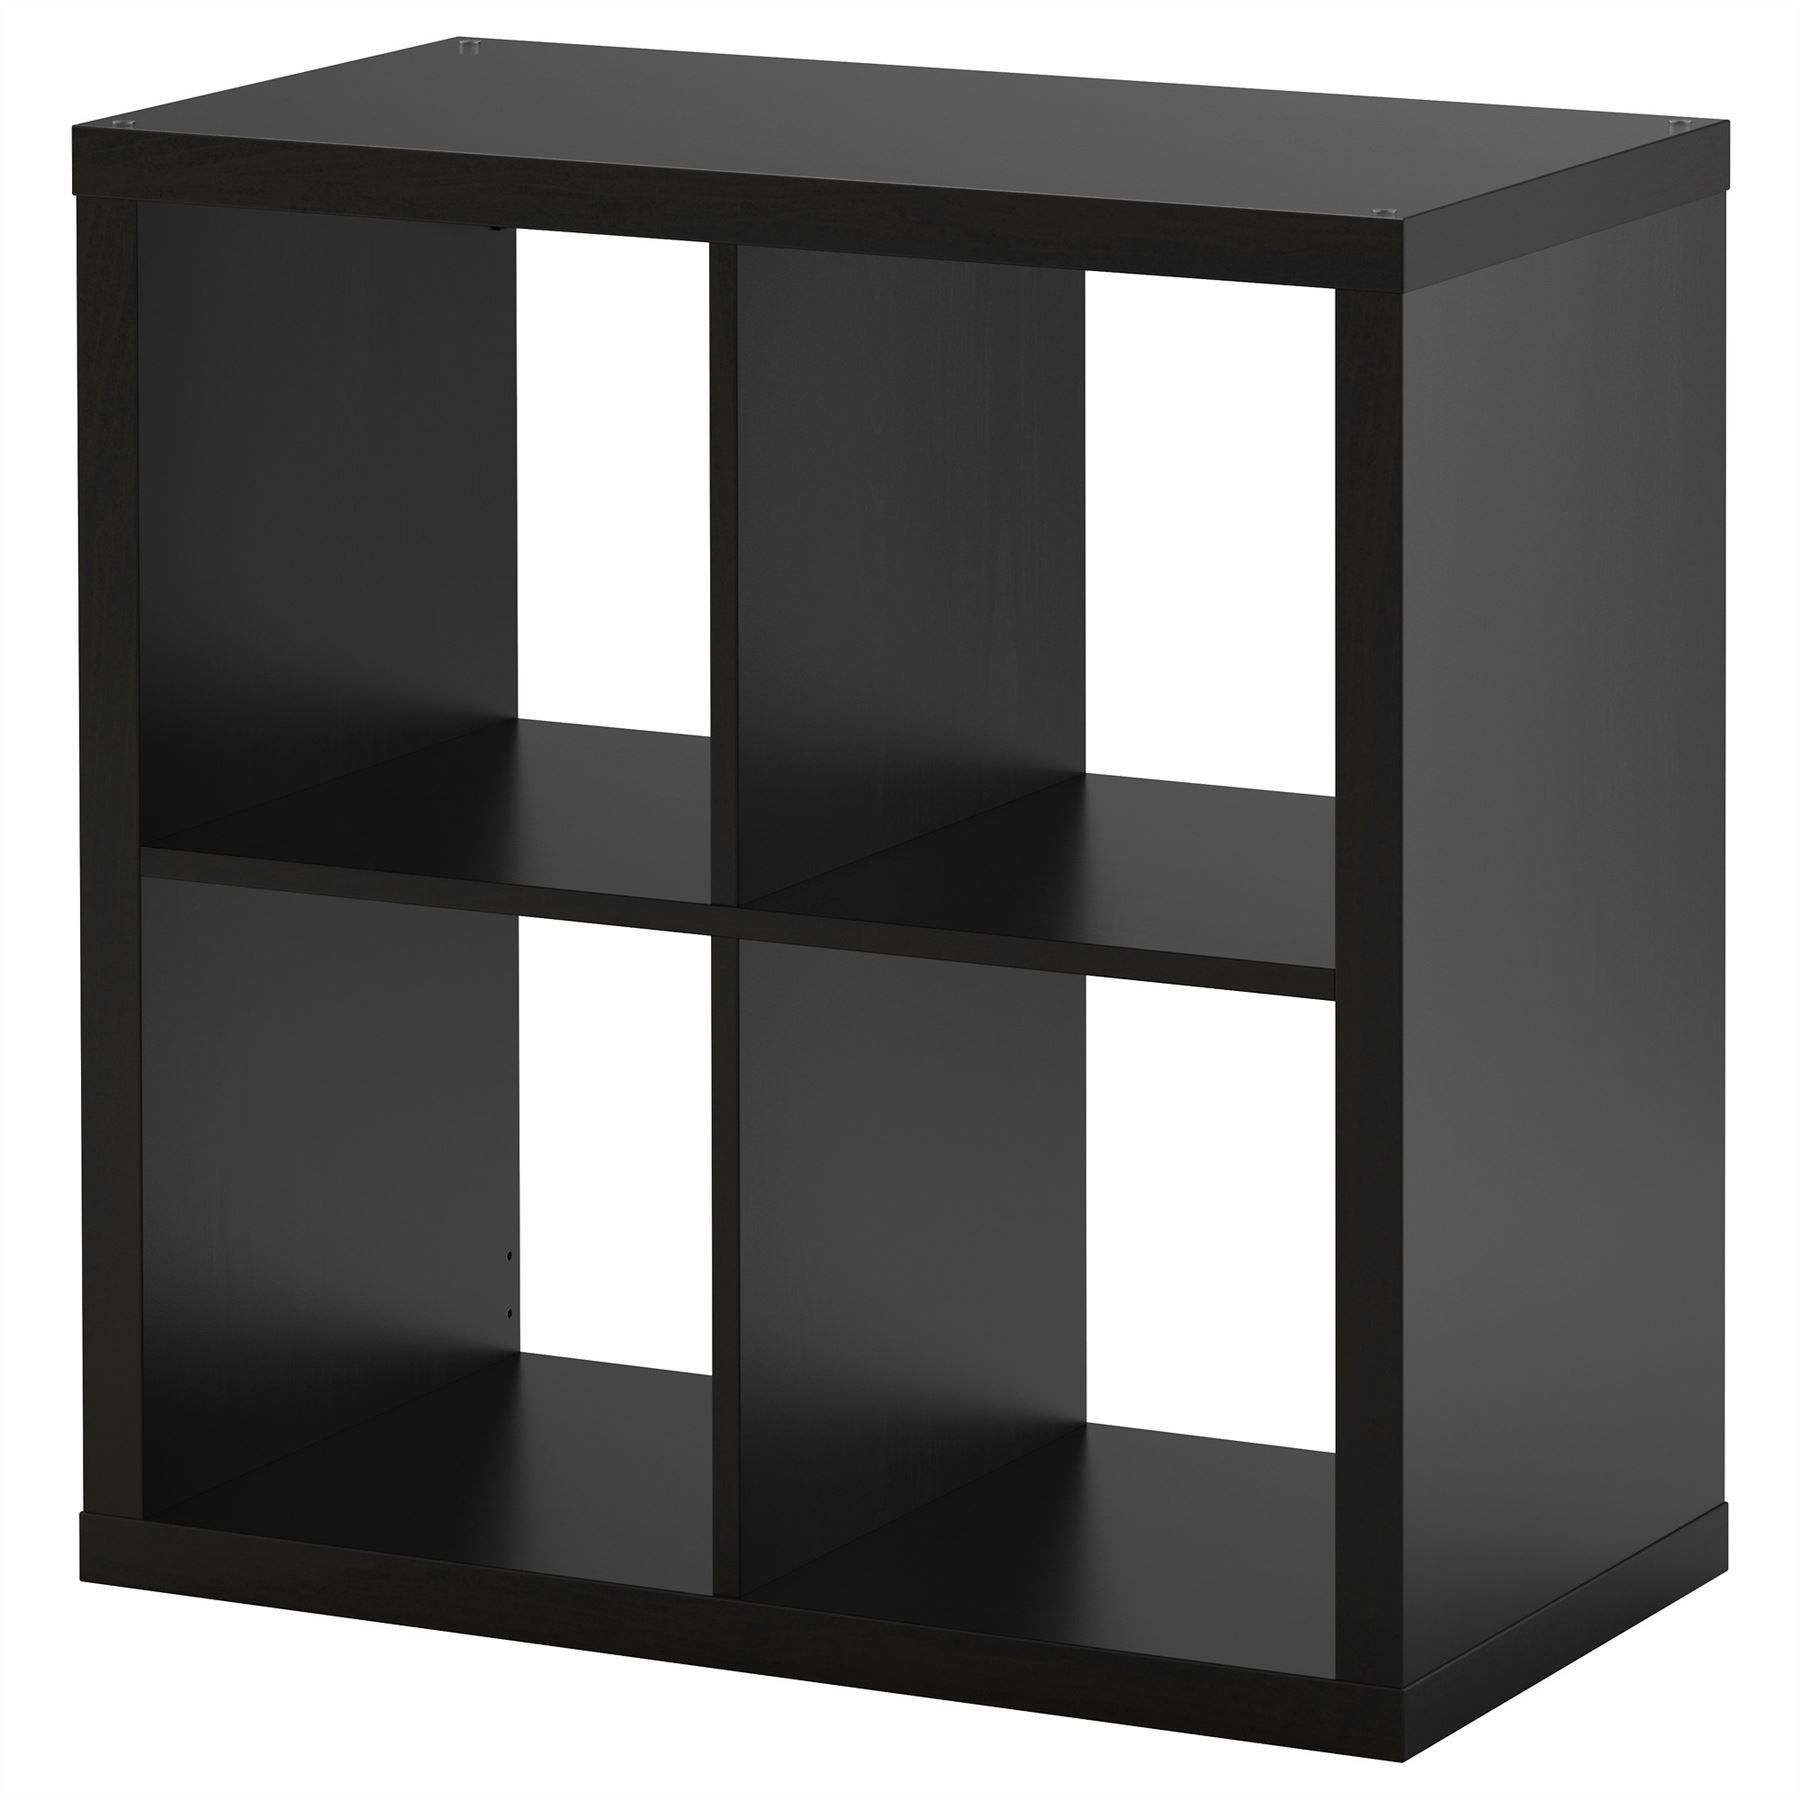 unit cub solid pictures bookcases wood bookcase impressive storage within steps cube with